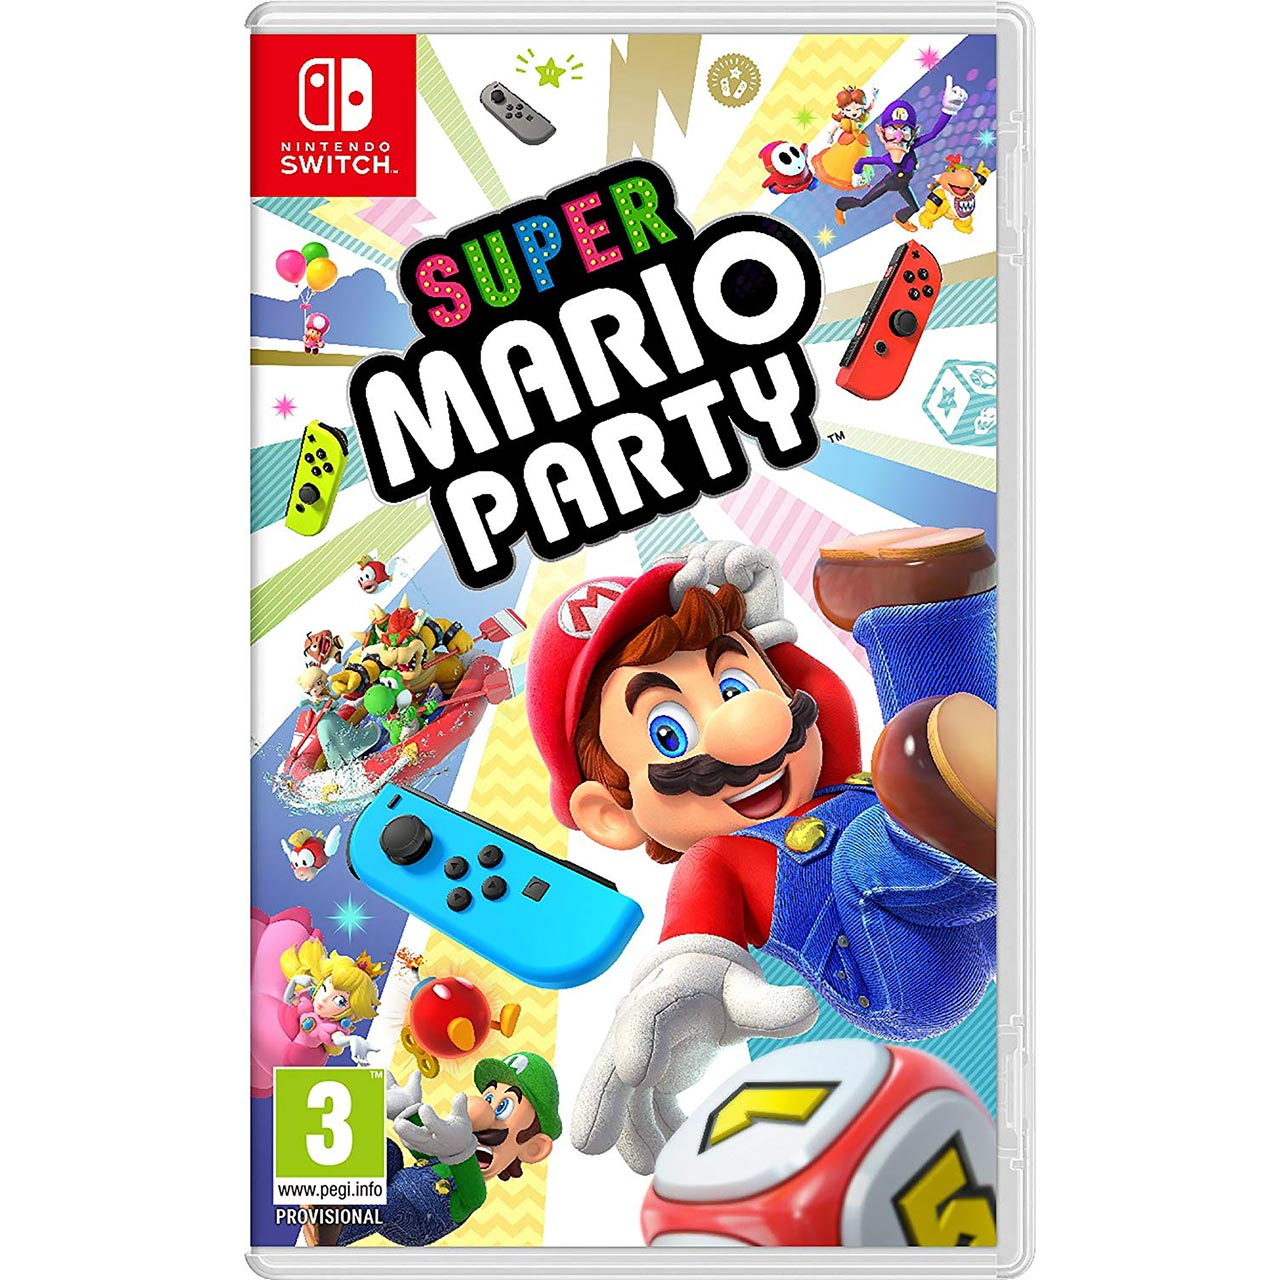 mario party 10 wii u title key